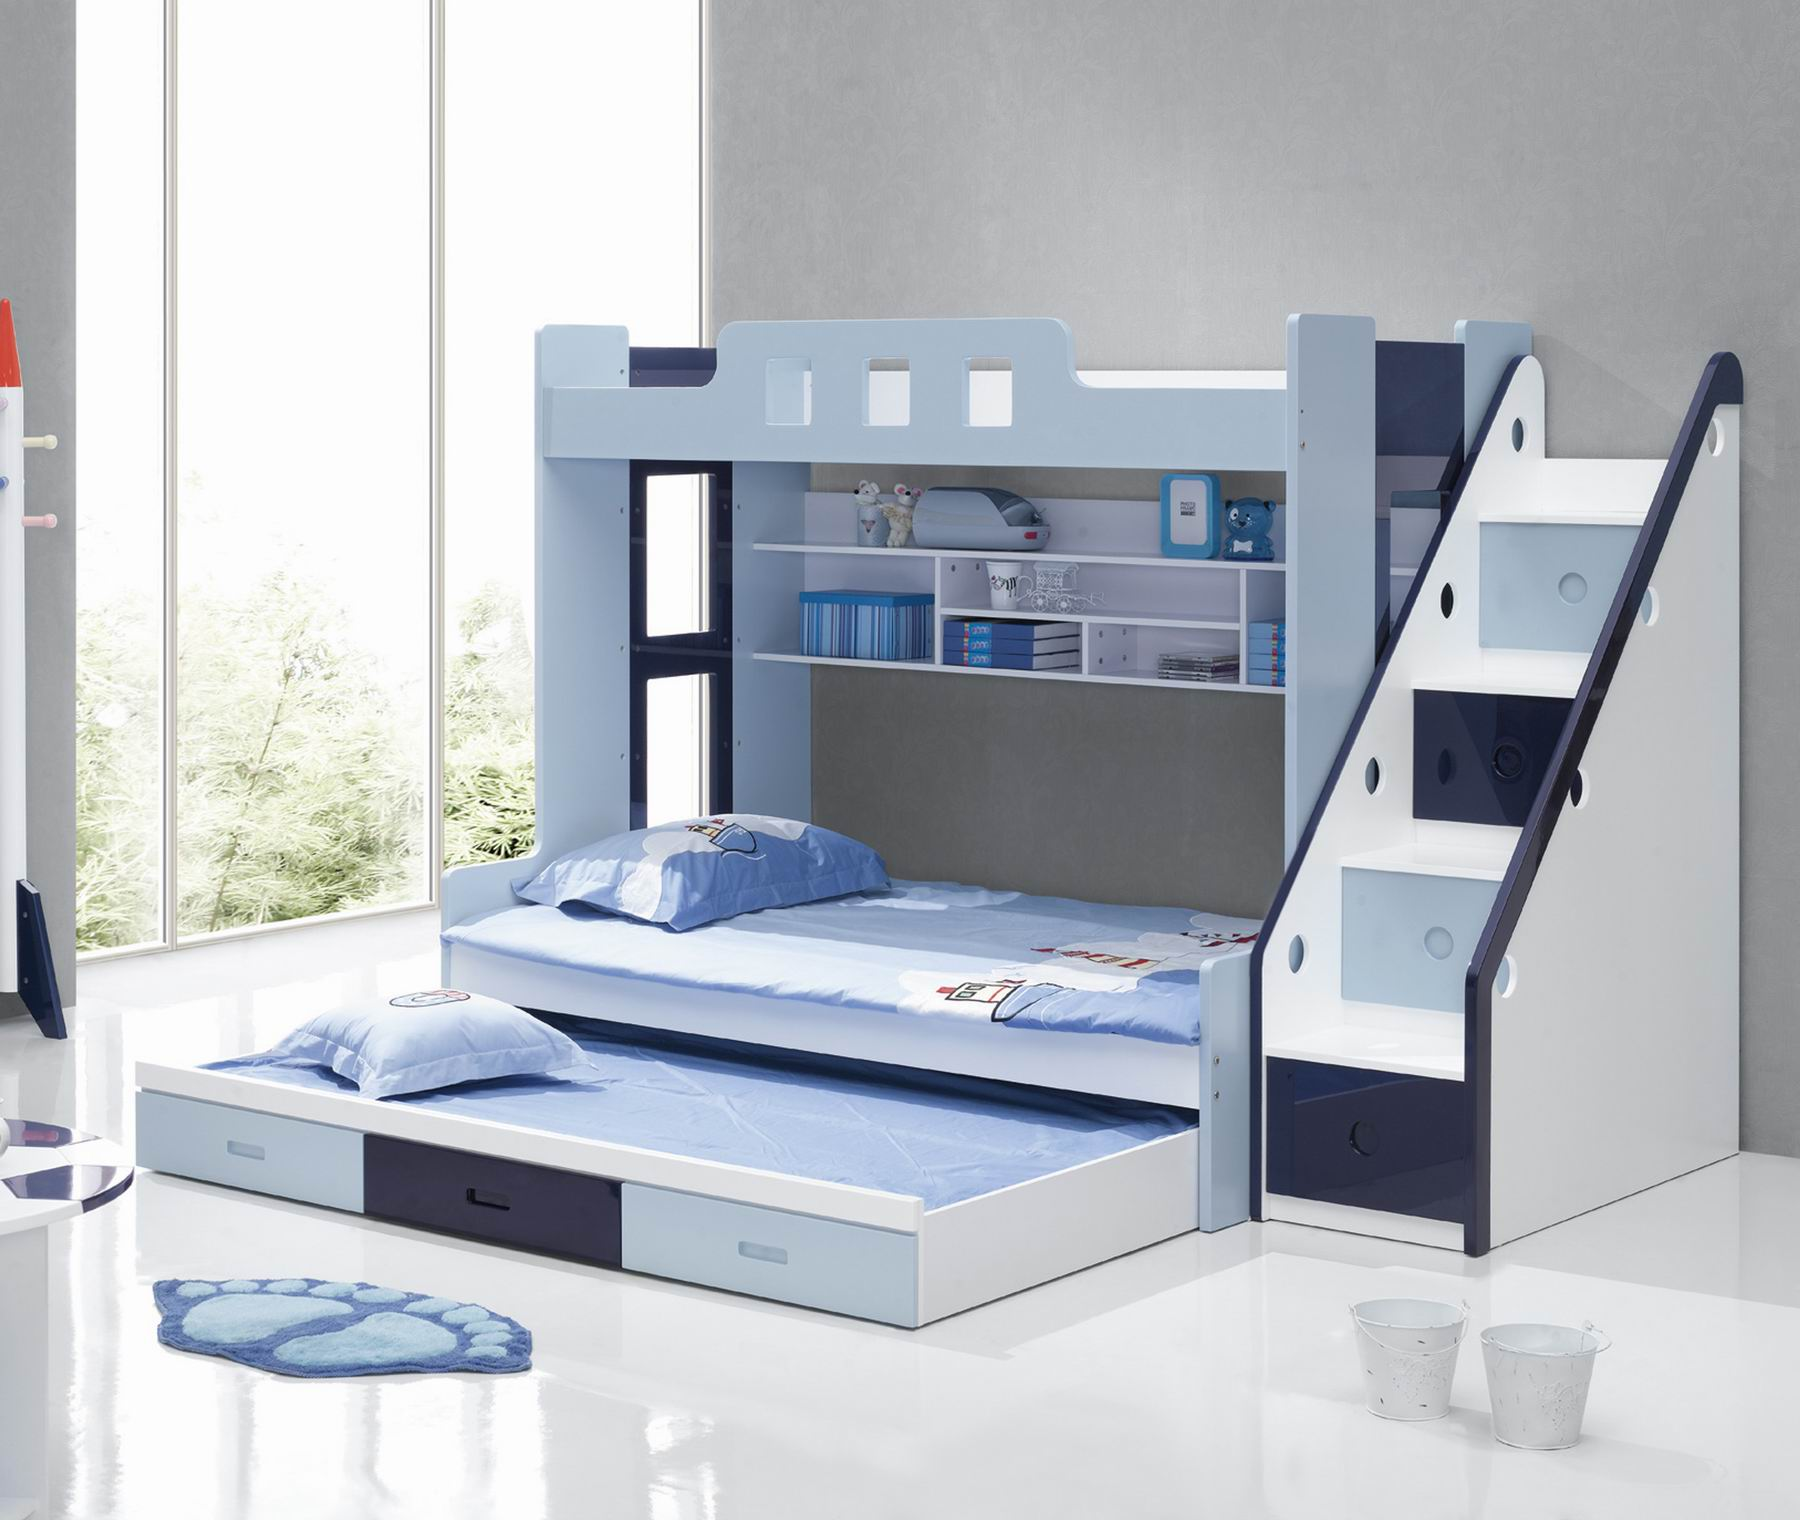 25 diy bunk beds with plans guide patterns for Kids bed design